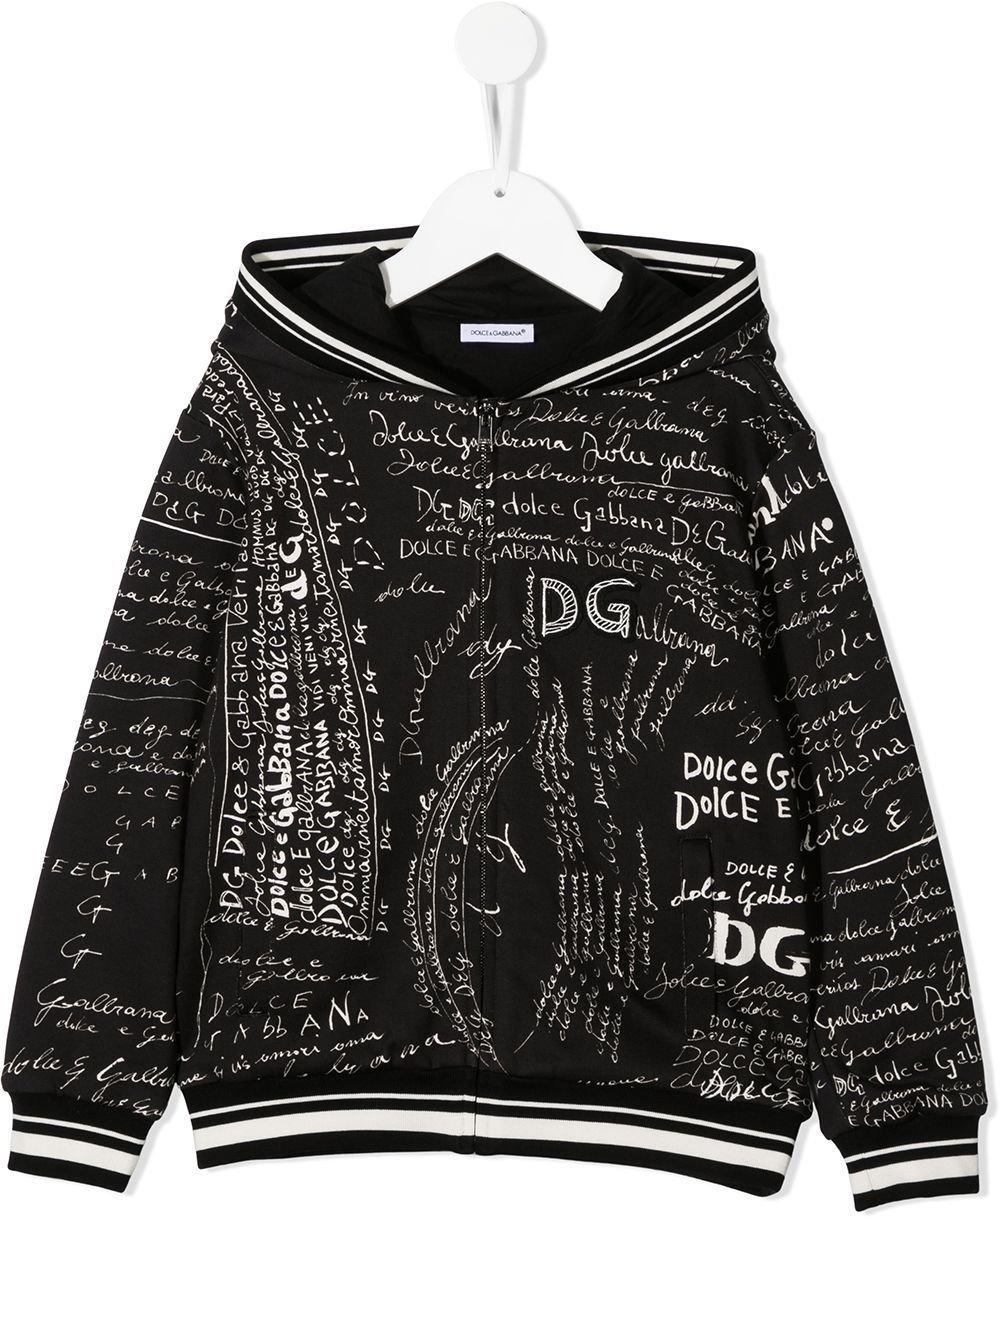 DOLCE & GABBANA KIDS All Over Logo Zipped Hoodie Black